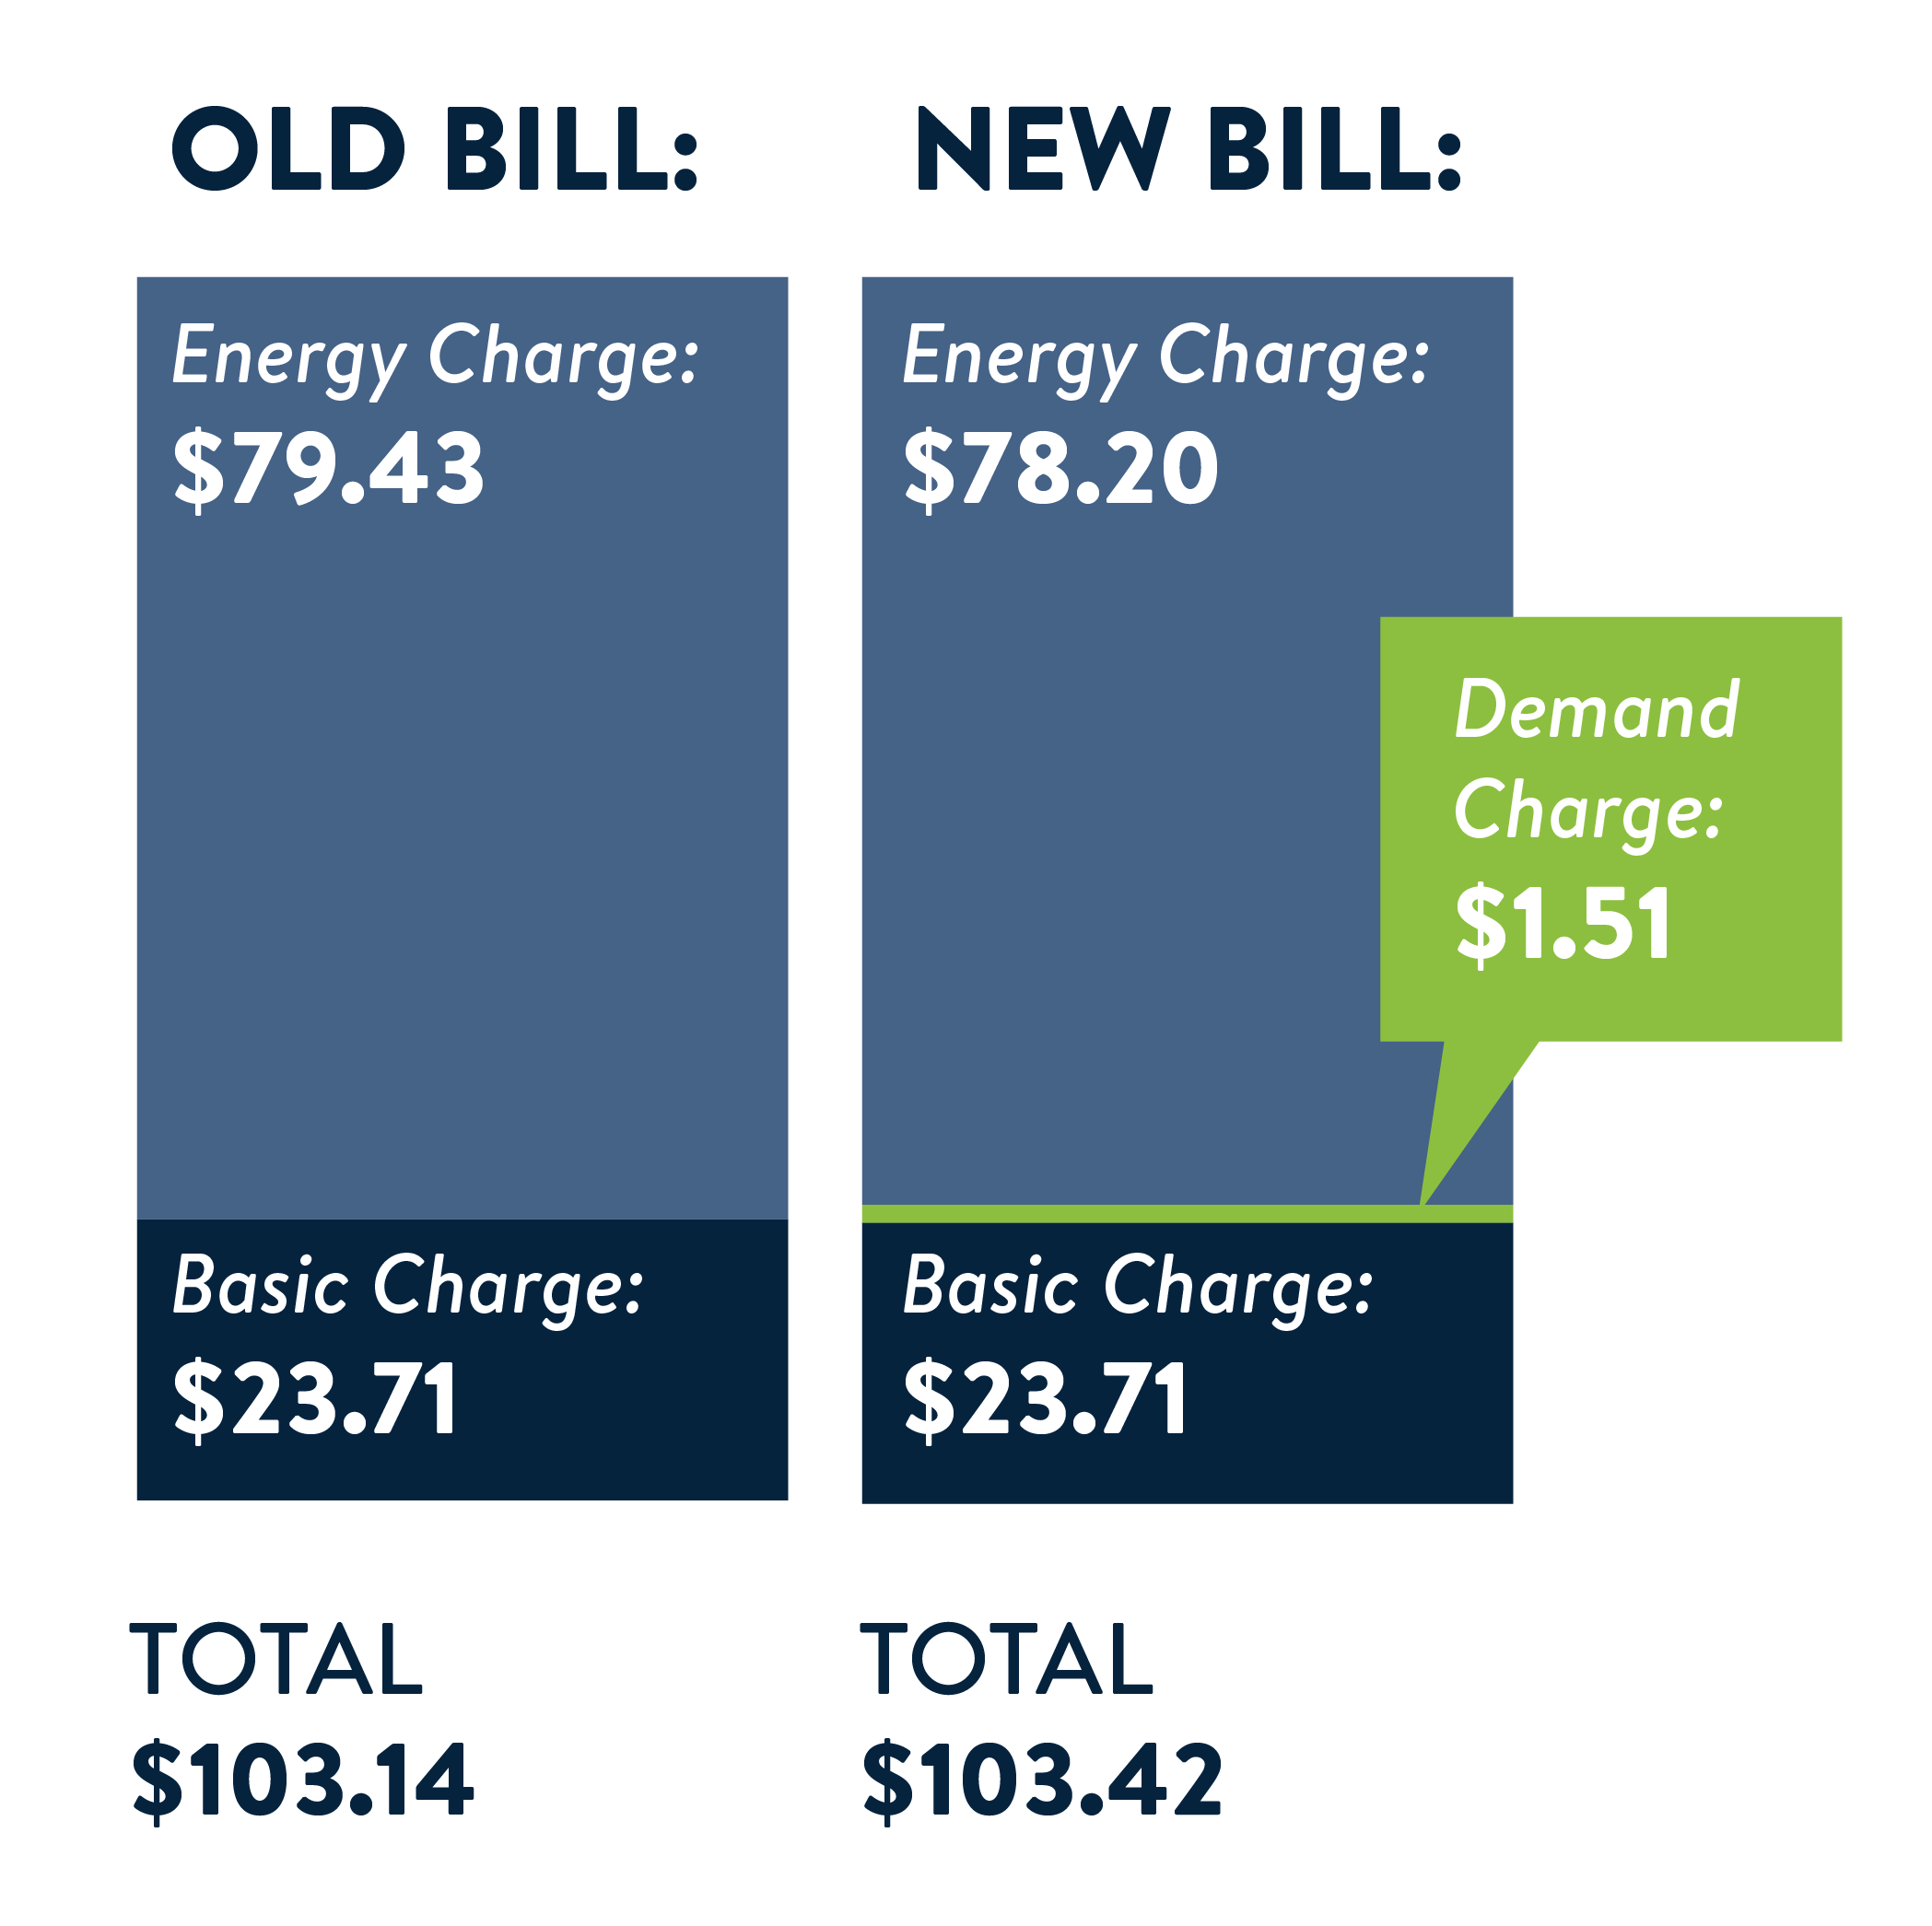 Old Bill vs New Bill